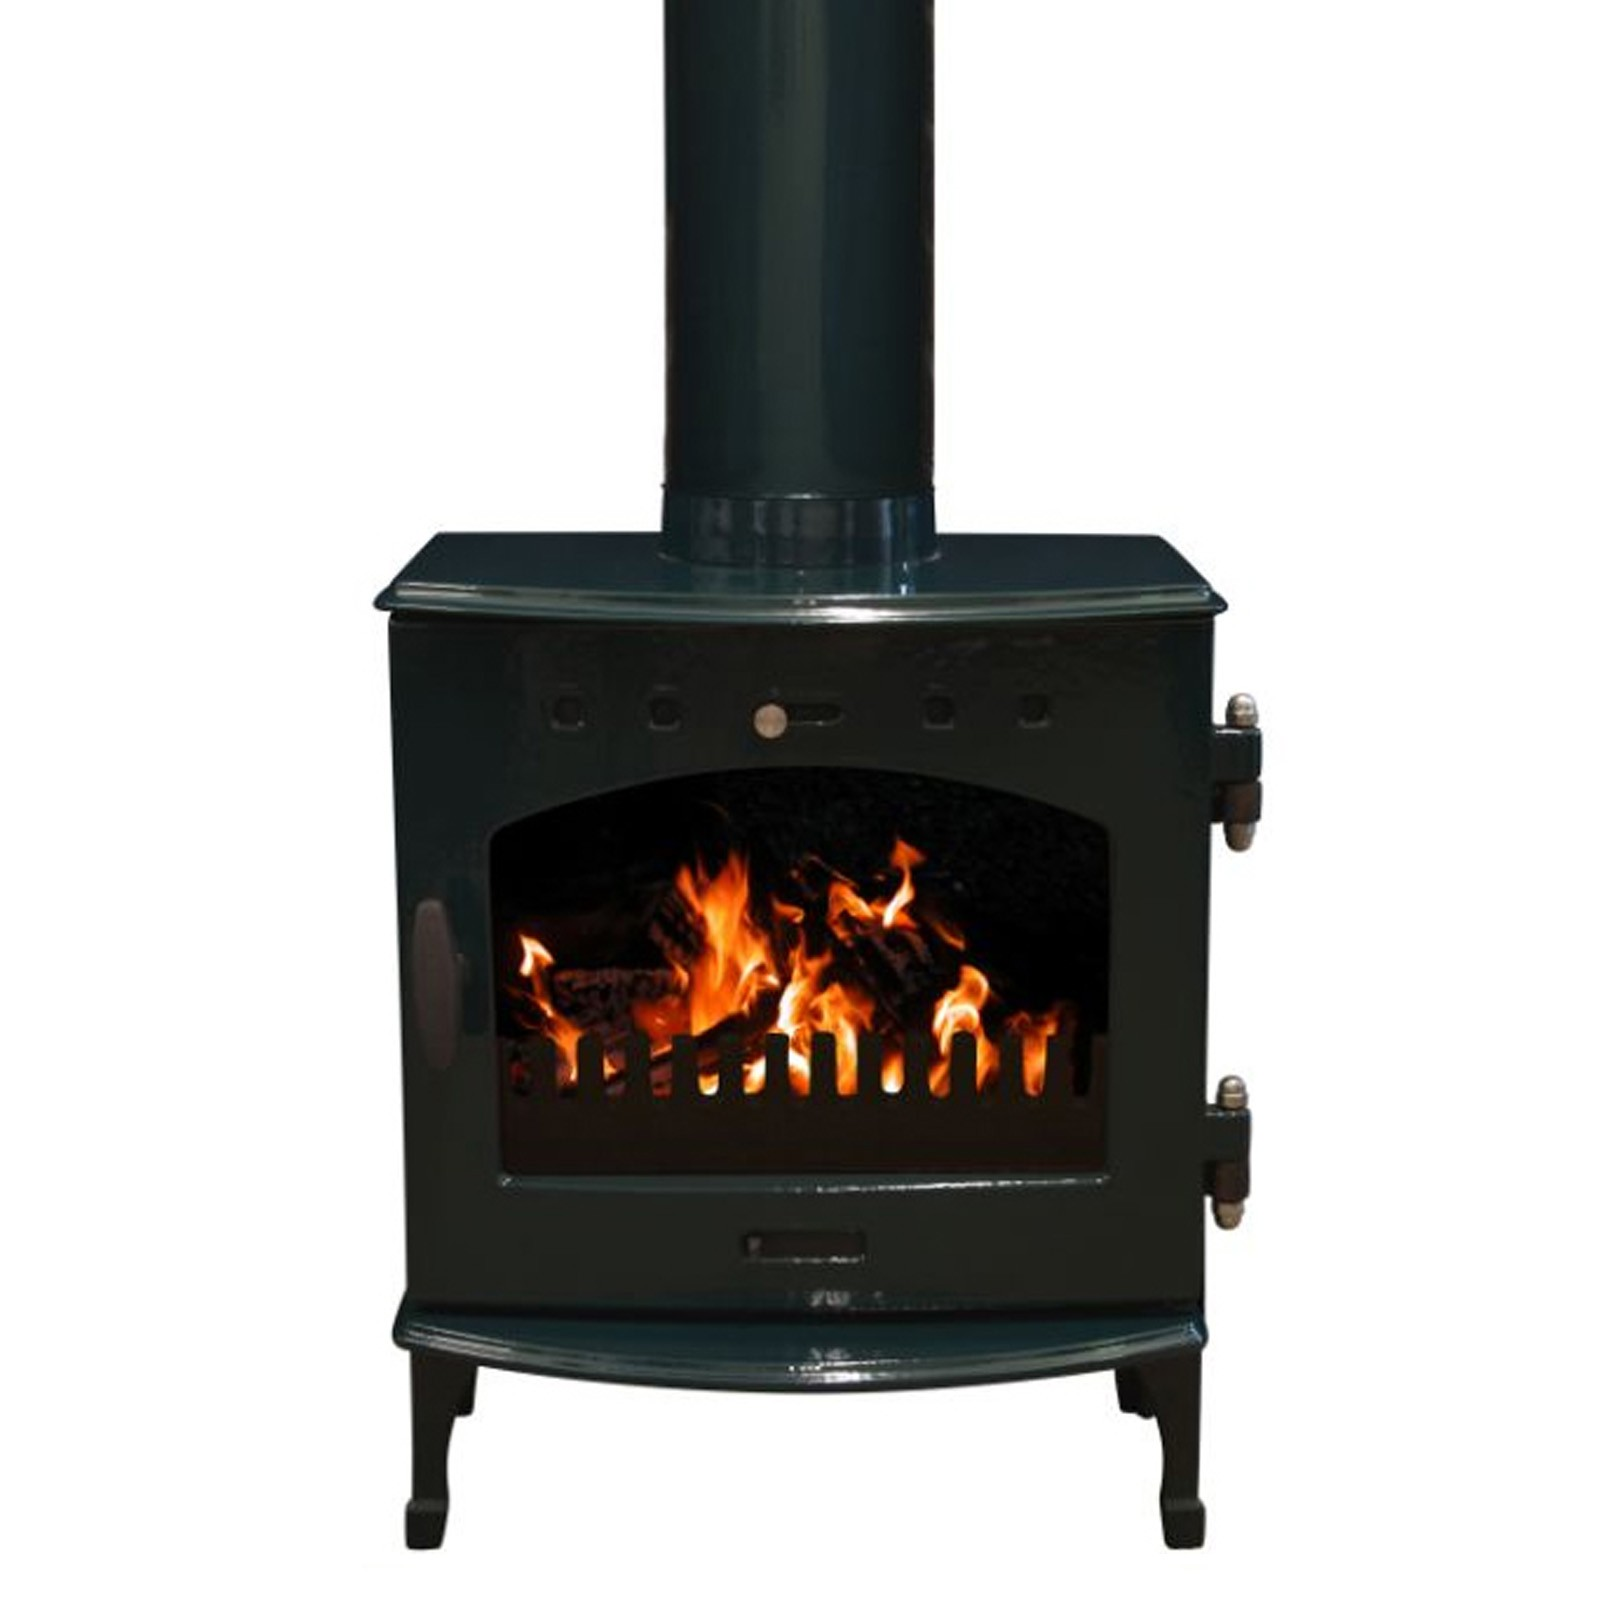 top quality products gallery firefox 12 multifuel stove. Black Bedroom Furniture Sets. Home Design Ideas